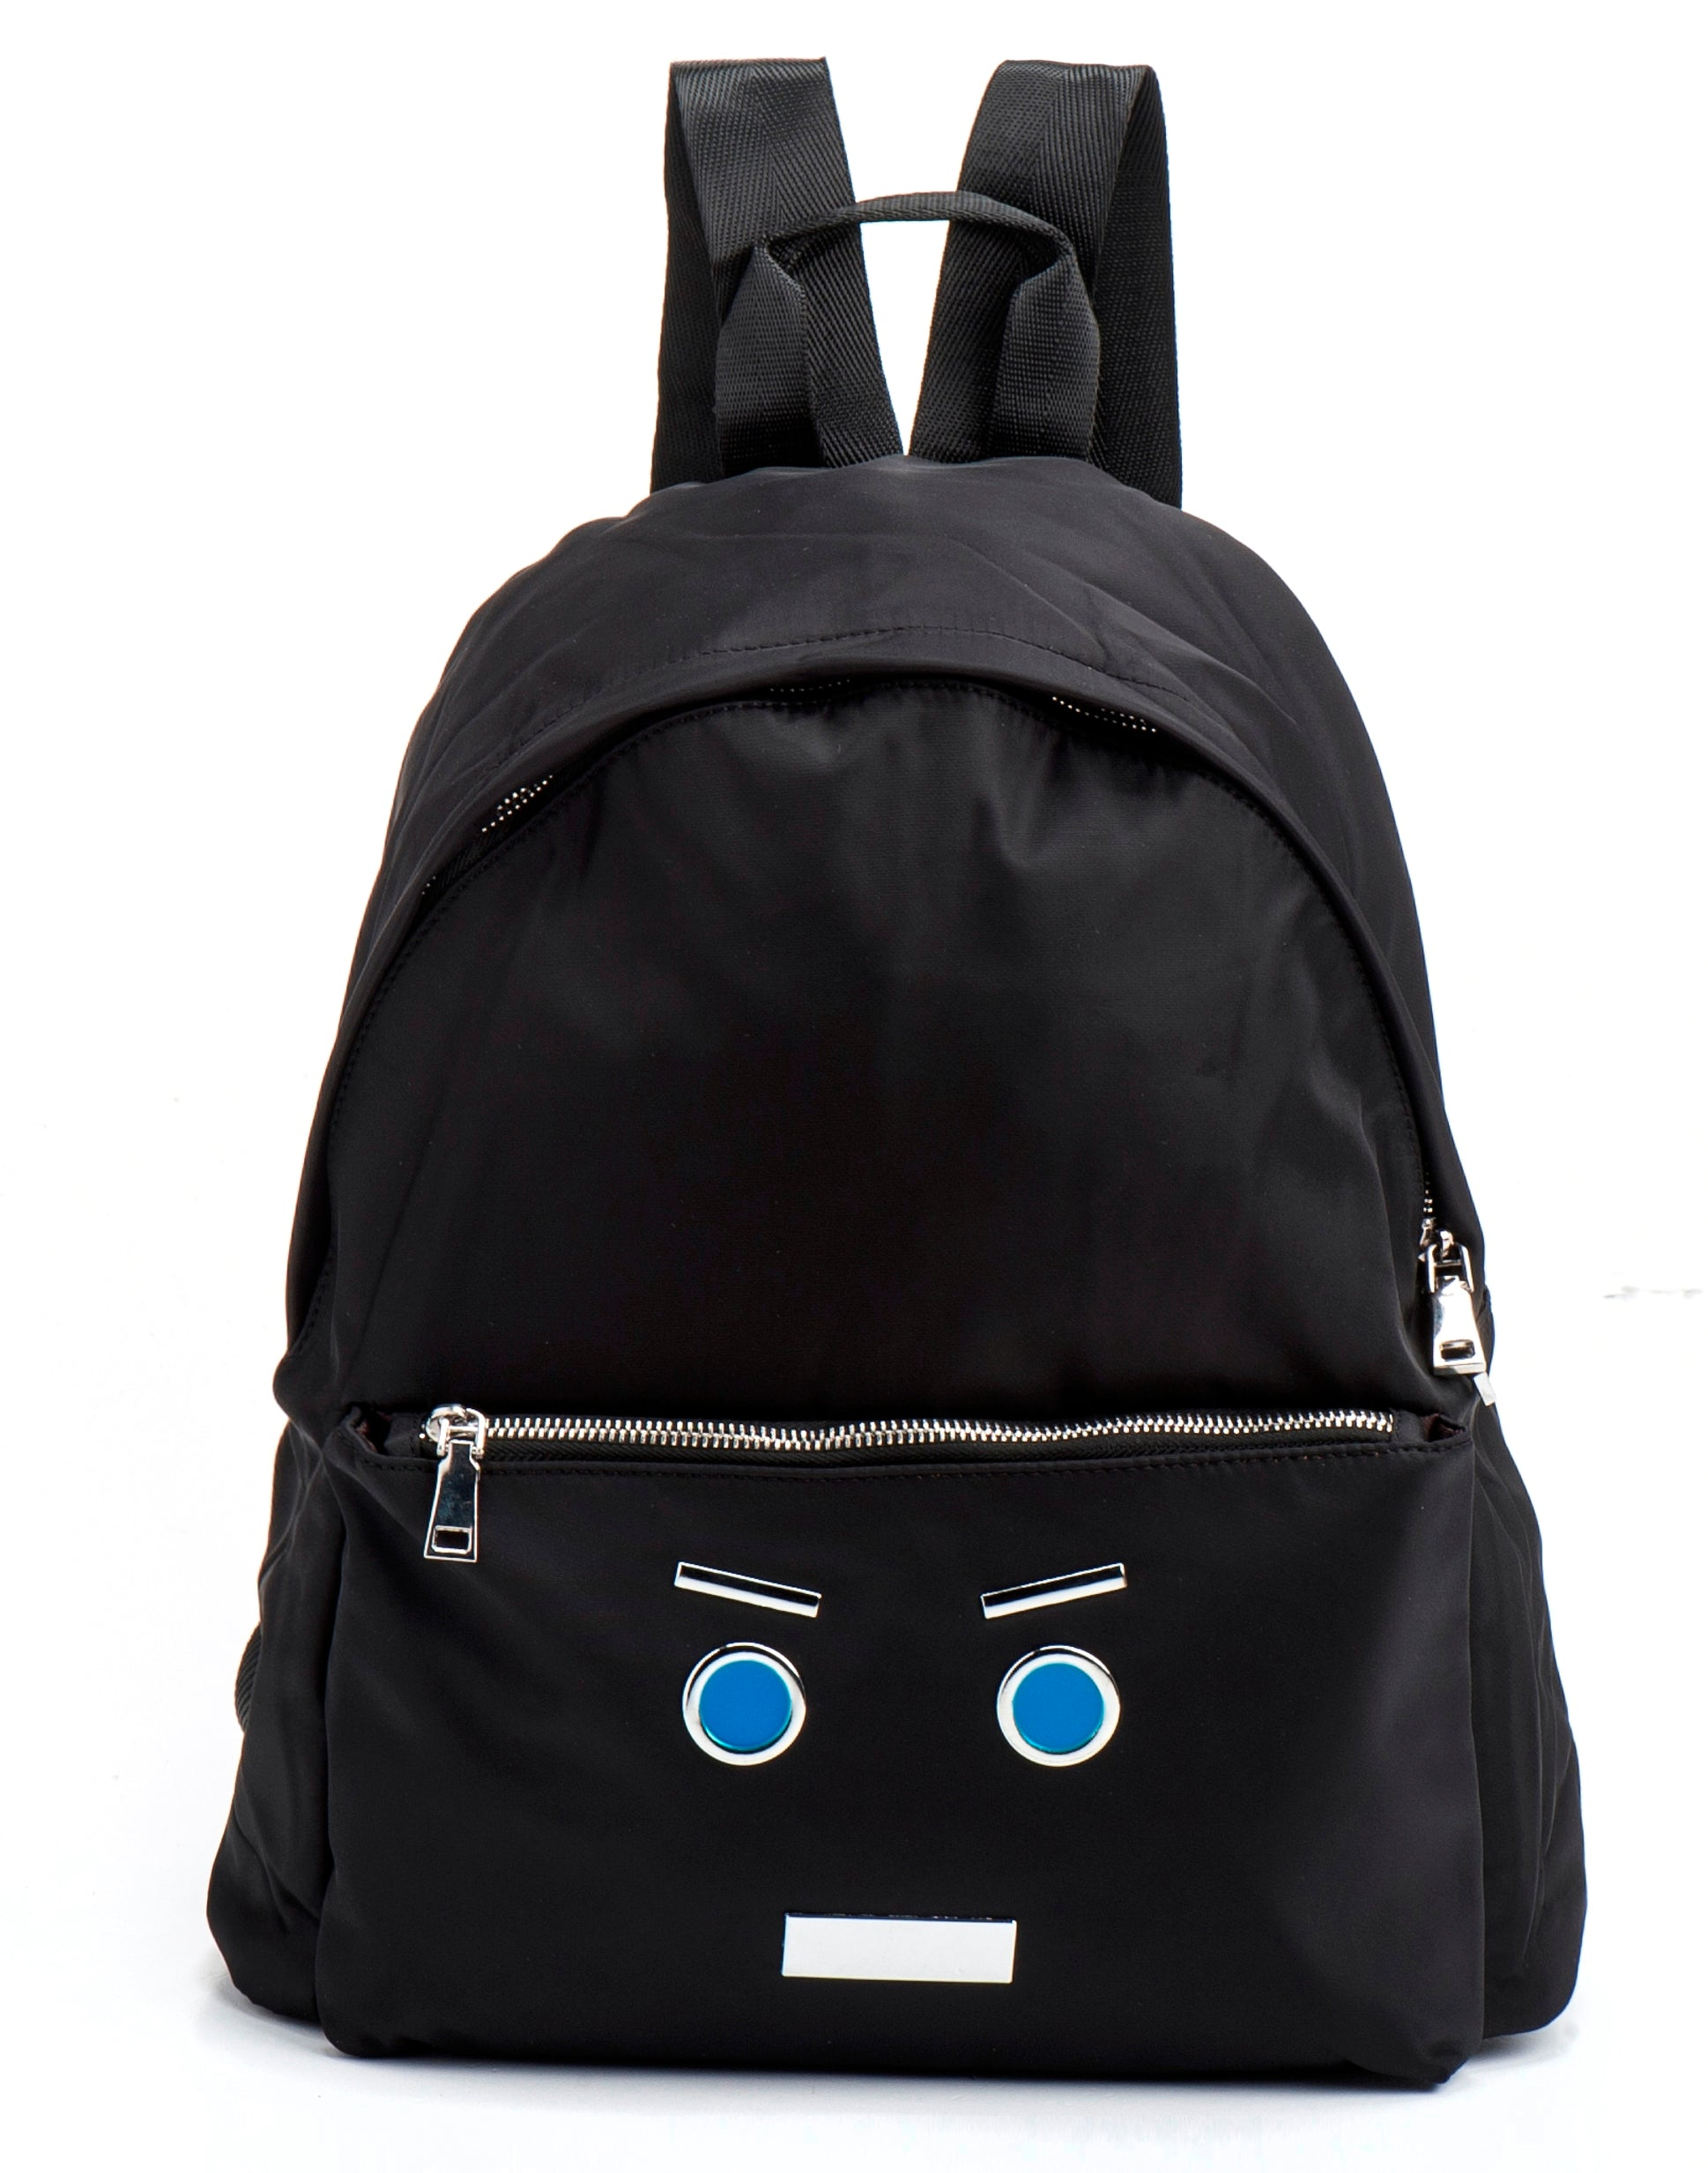 Chiara Black backpack